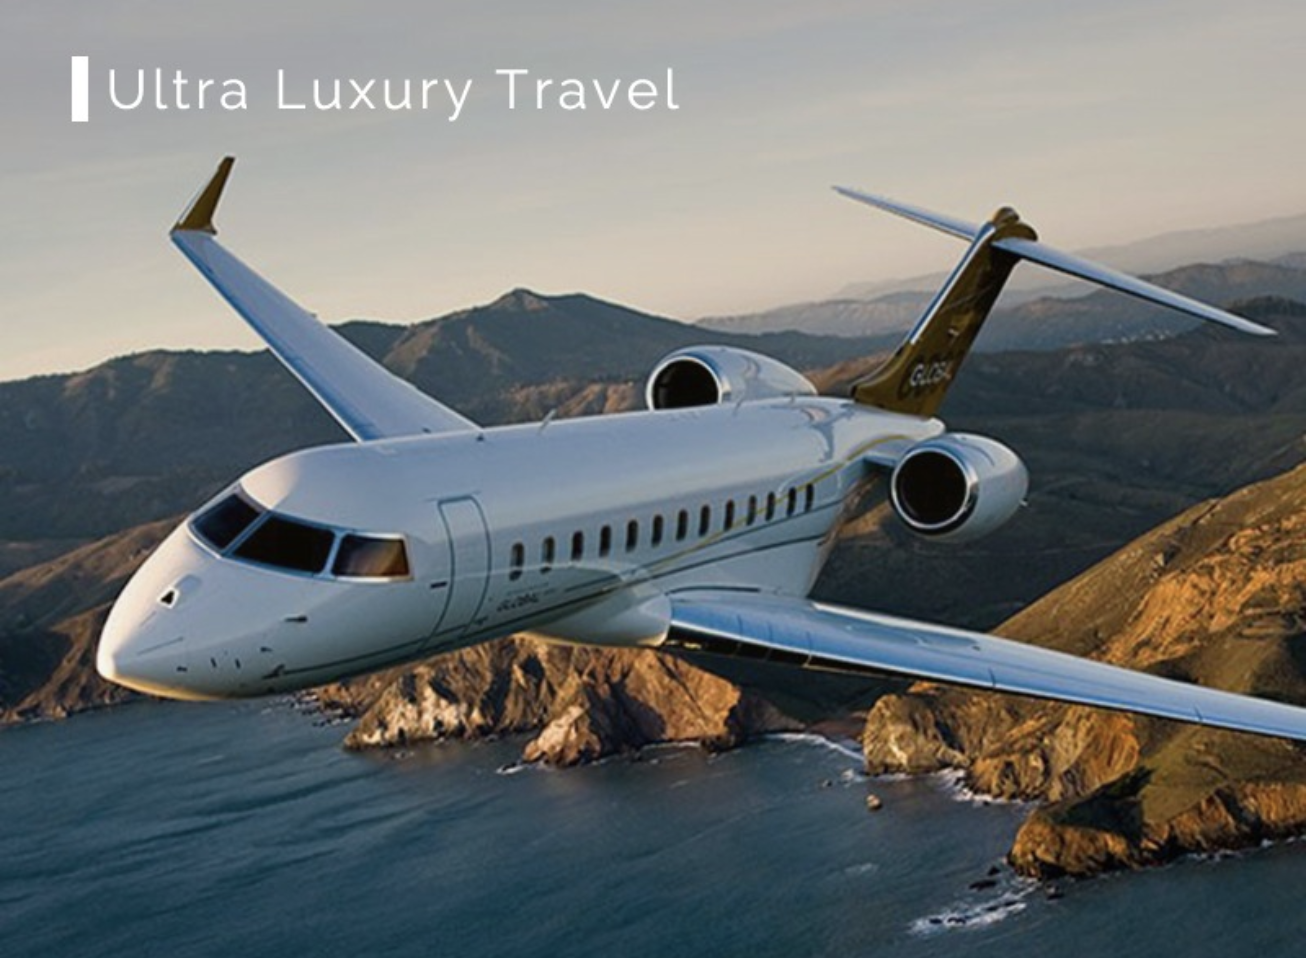 Ultra Luxury Travel